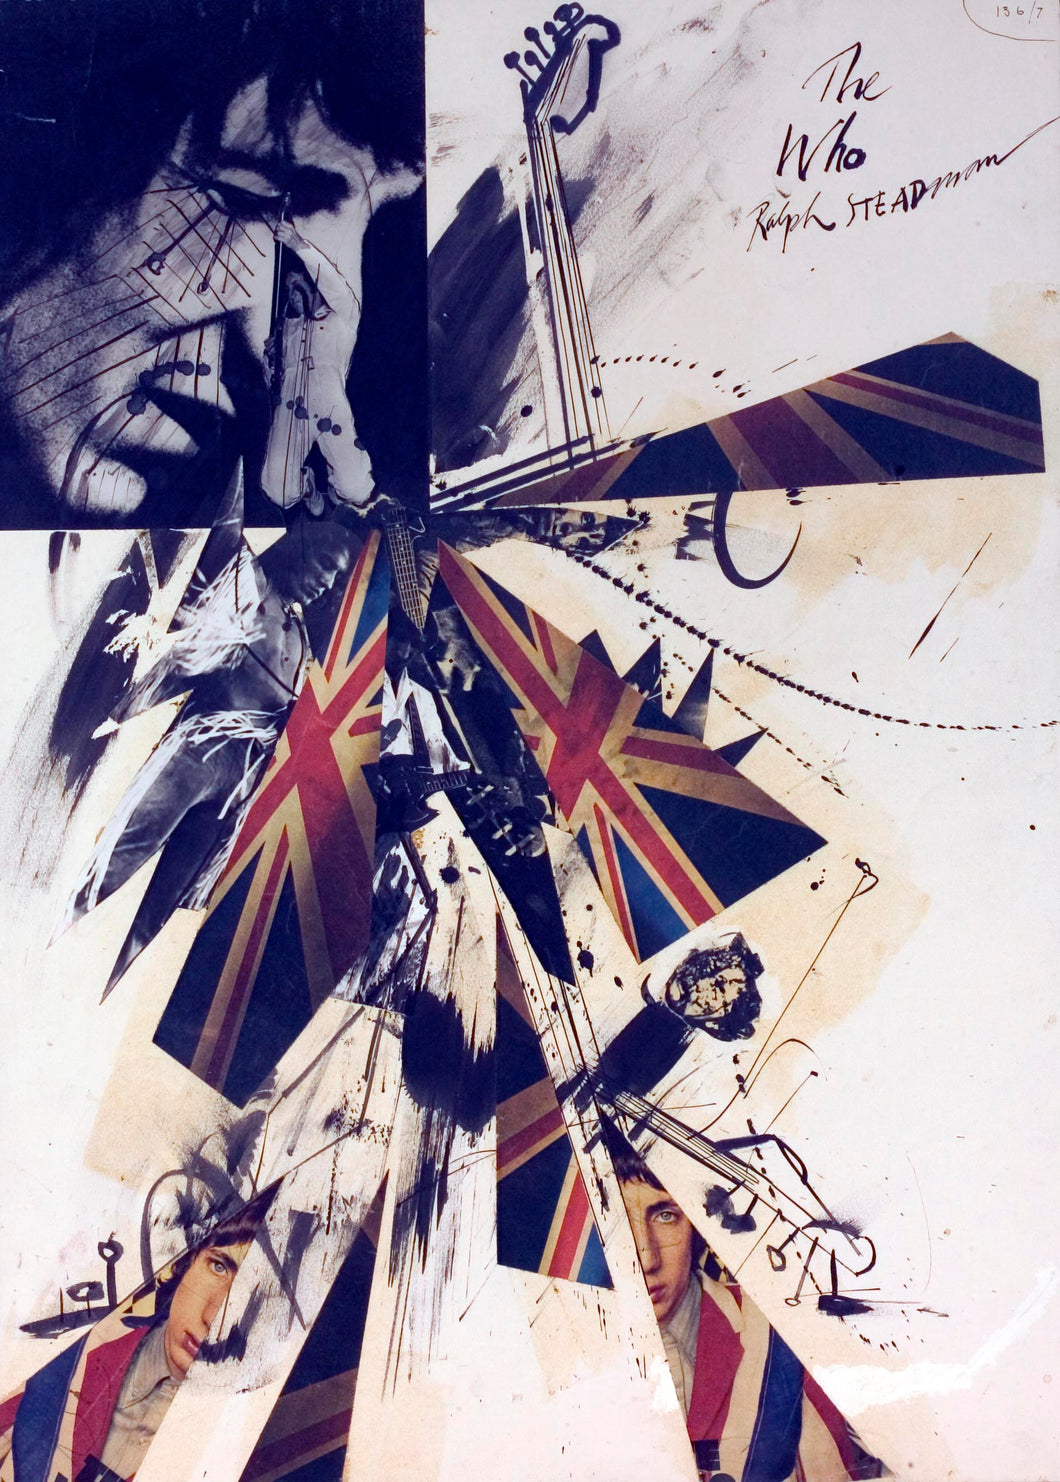 The Who Ralph Steadman Signed Print